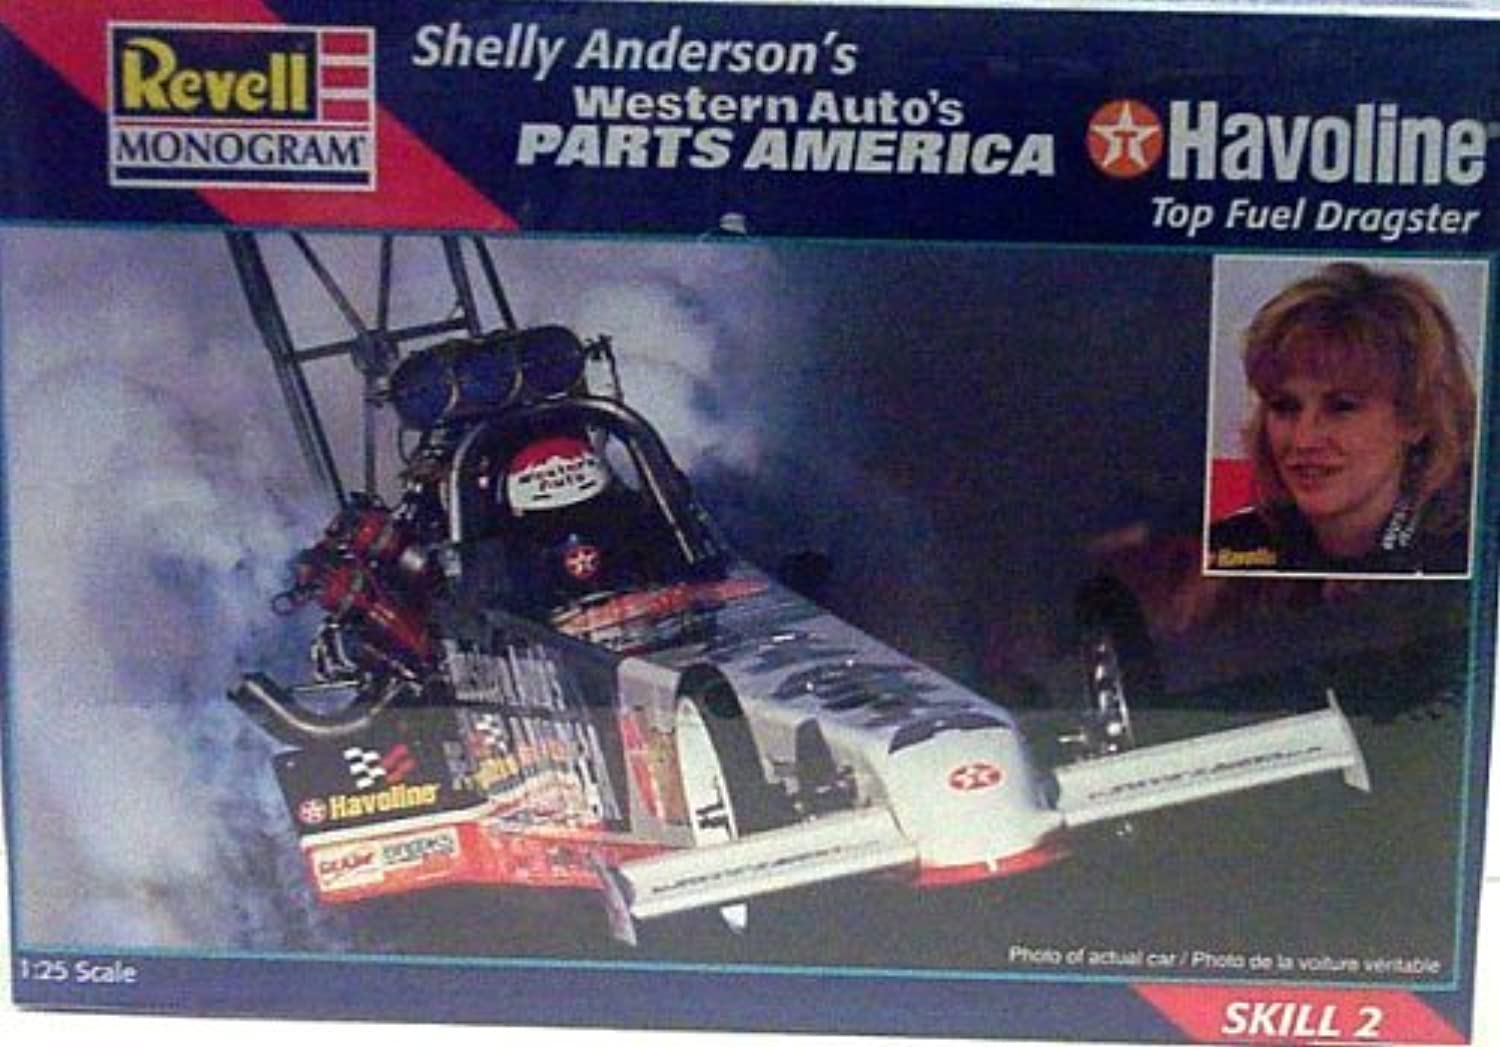 Revell Monogram 7651 Shelly Anderson's Western Auto's Parts America Havoline Top Fuel Dragster - Plastic Model Kit - 1 25 Scale - Skill Level 2